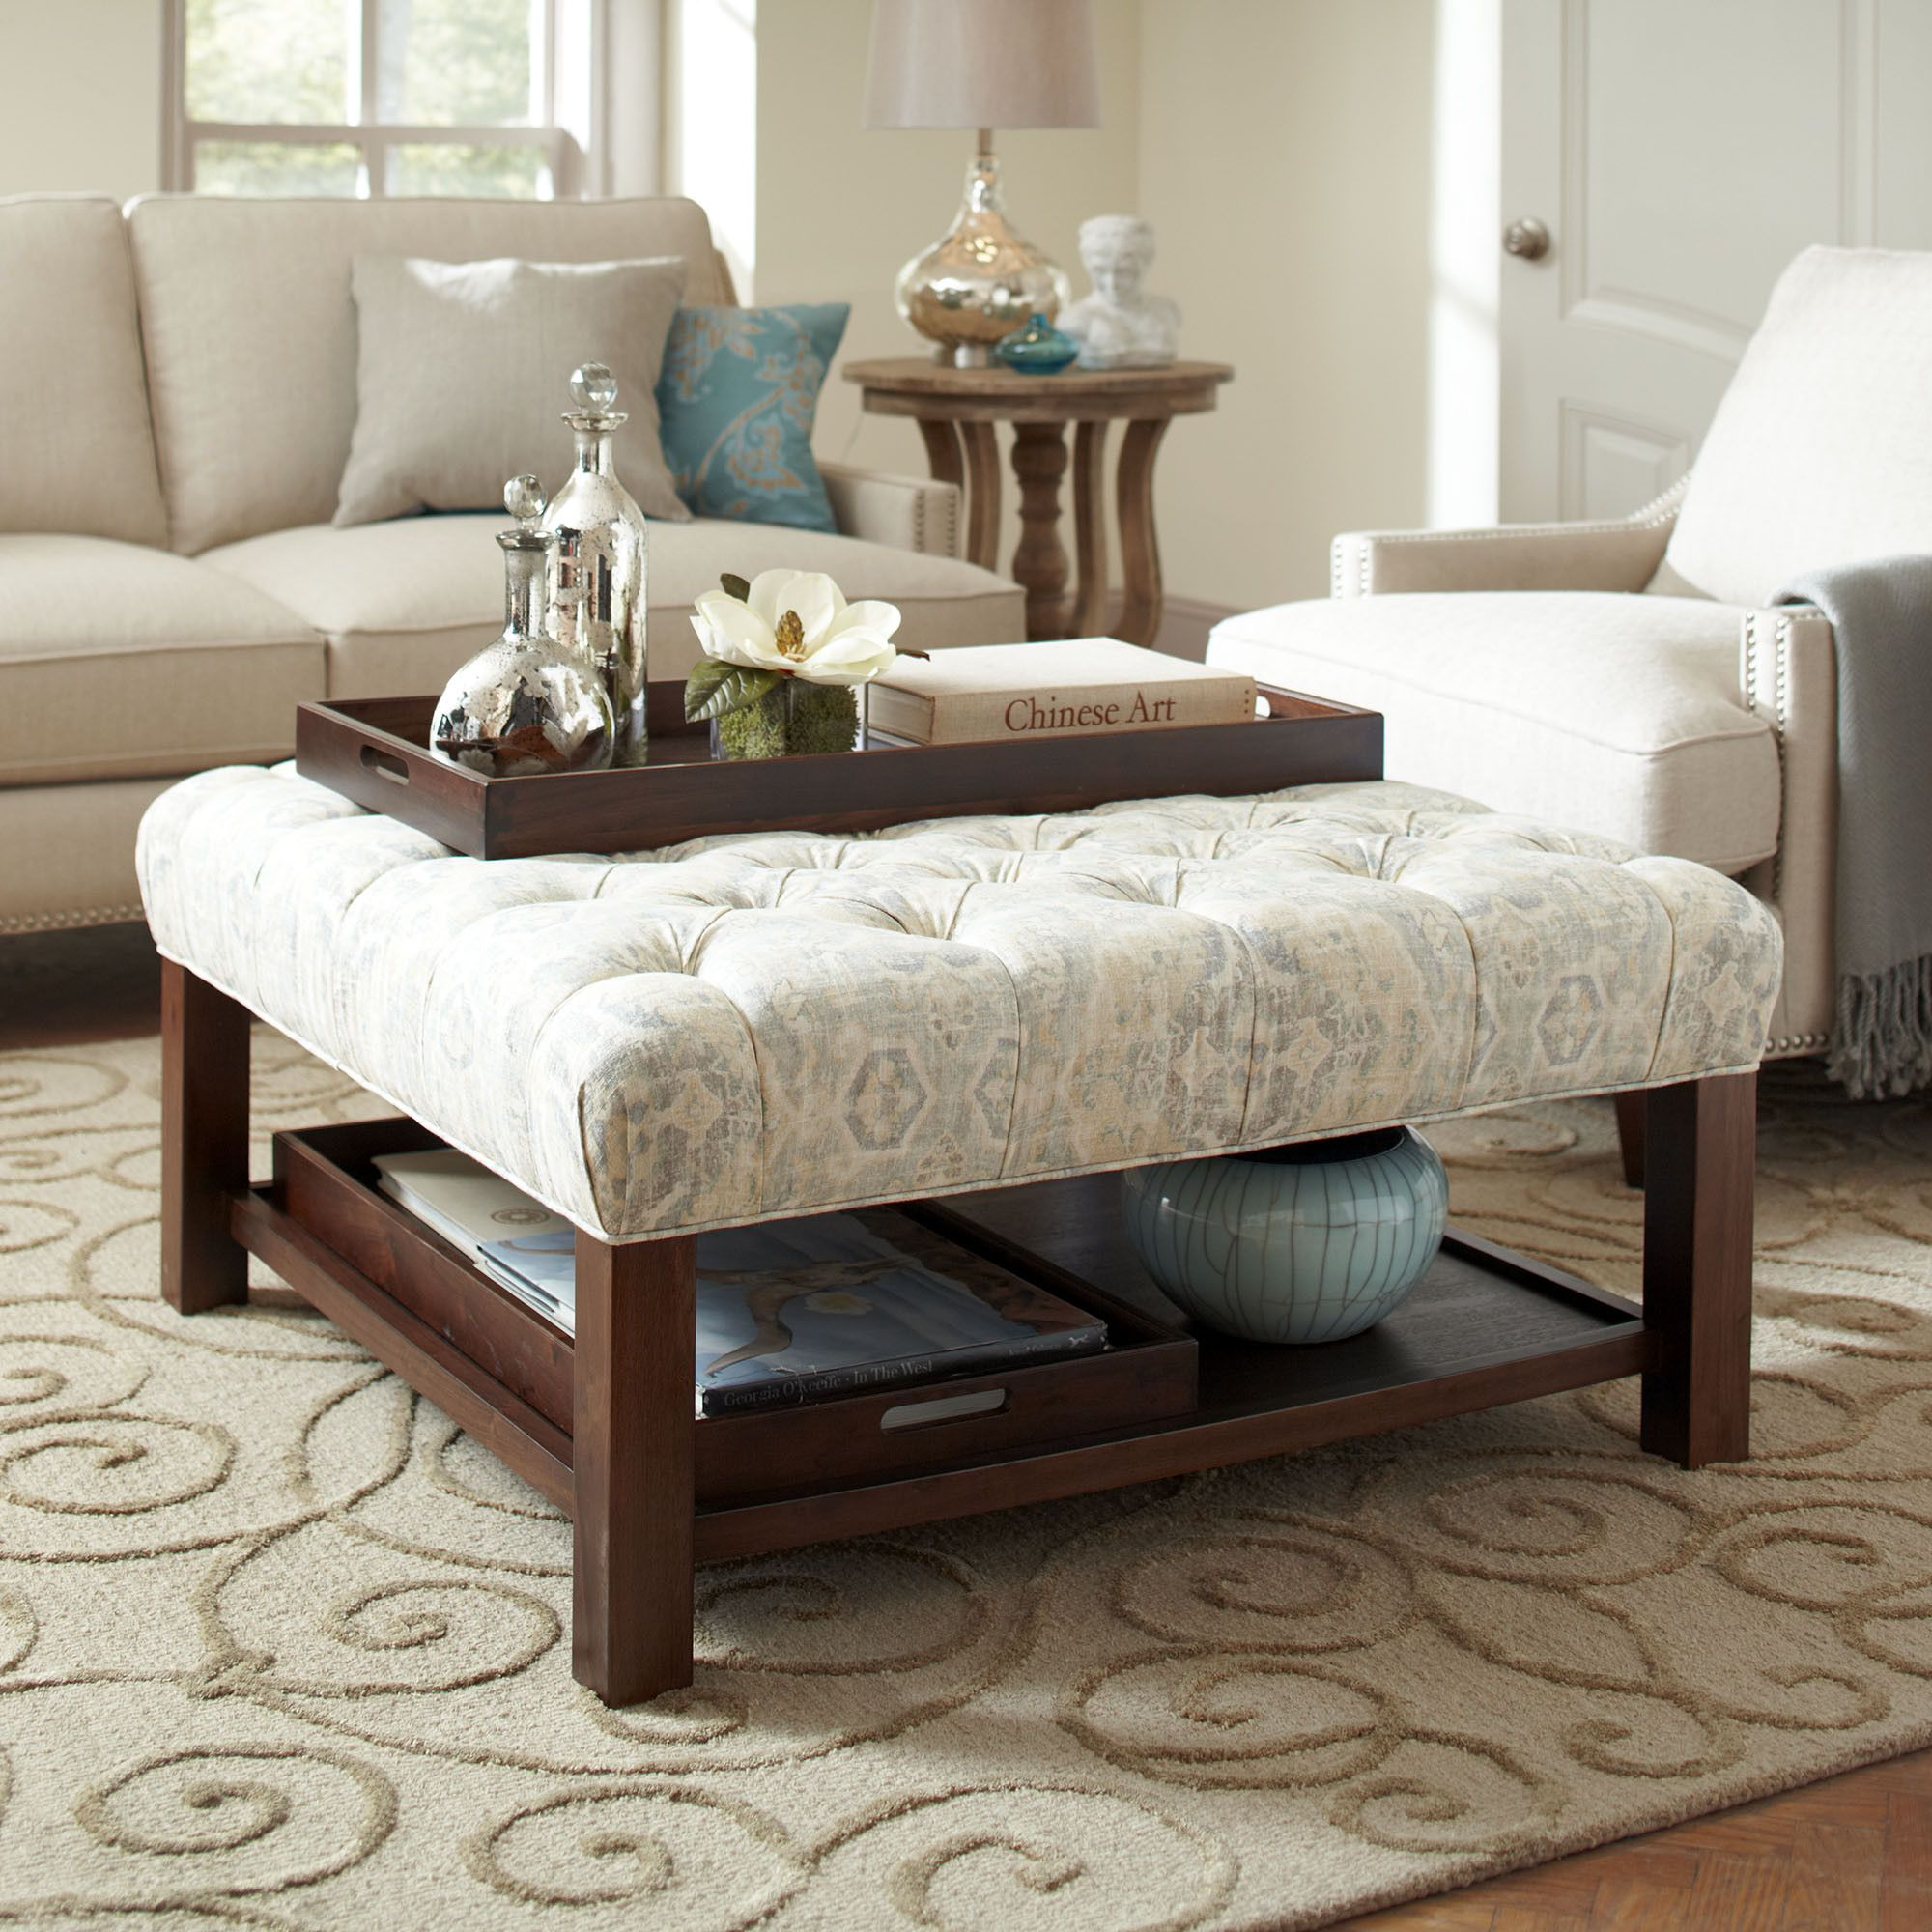 Everly Ottoman A Deep Tufted Cushion Upholstered In Soft Sunwashed Print Rounds Out The Square Structure Of While Set Matching